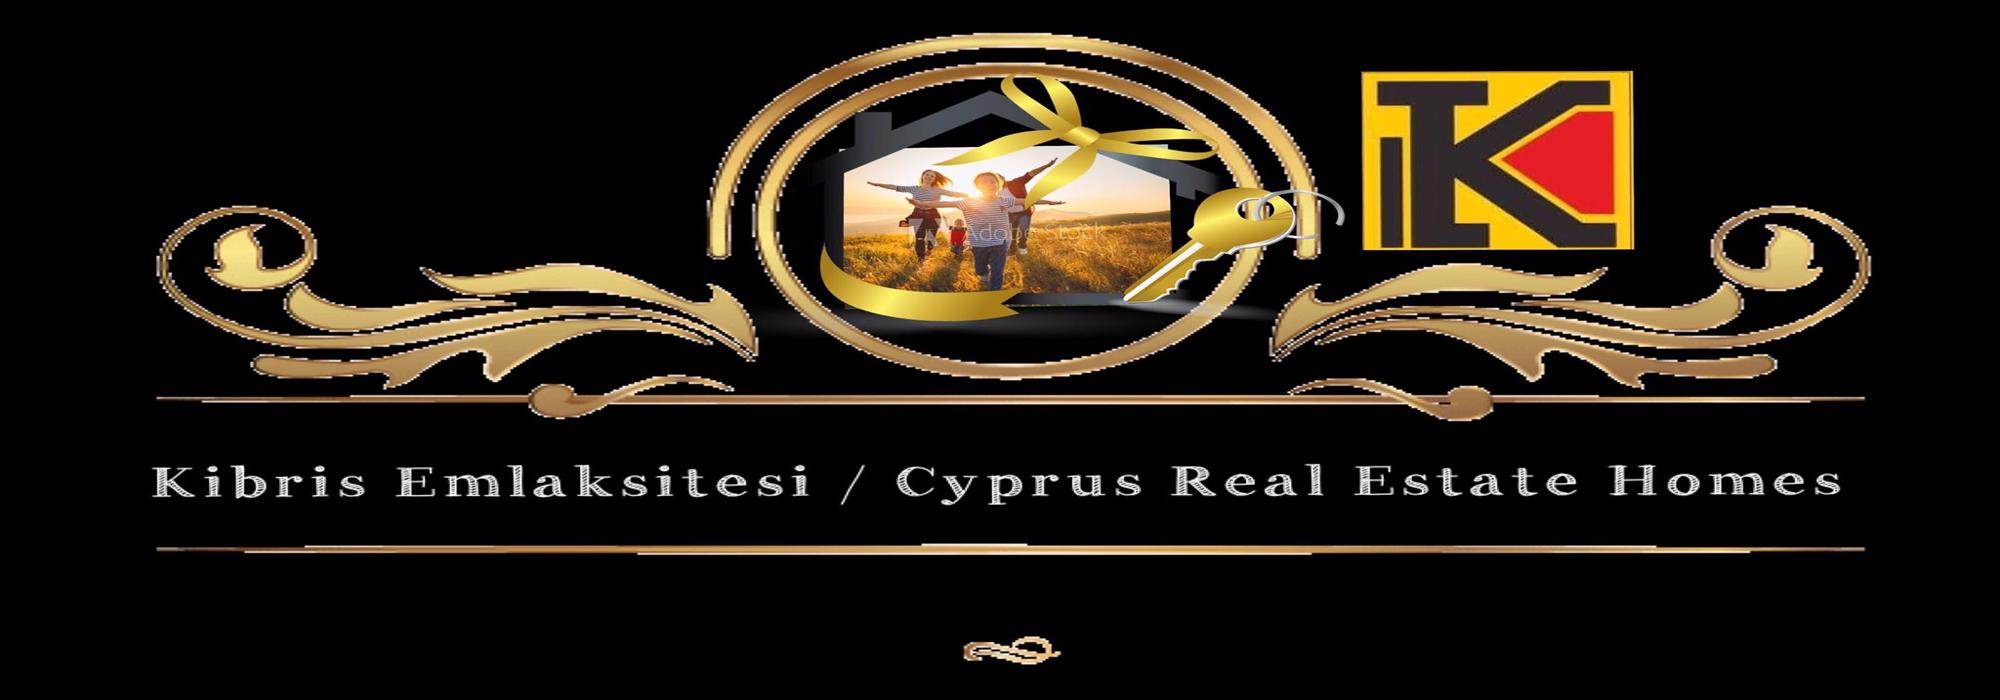 Cyprus Real Estate Homes